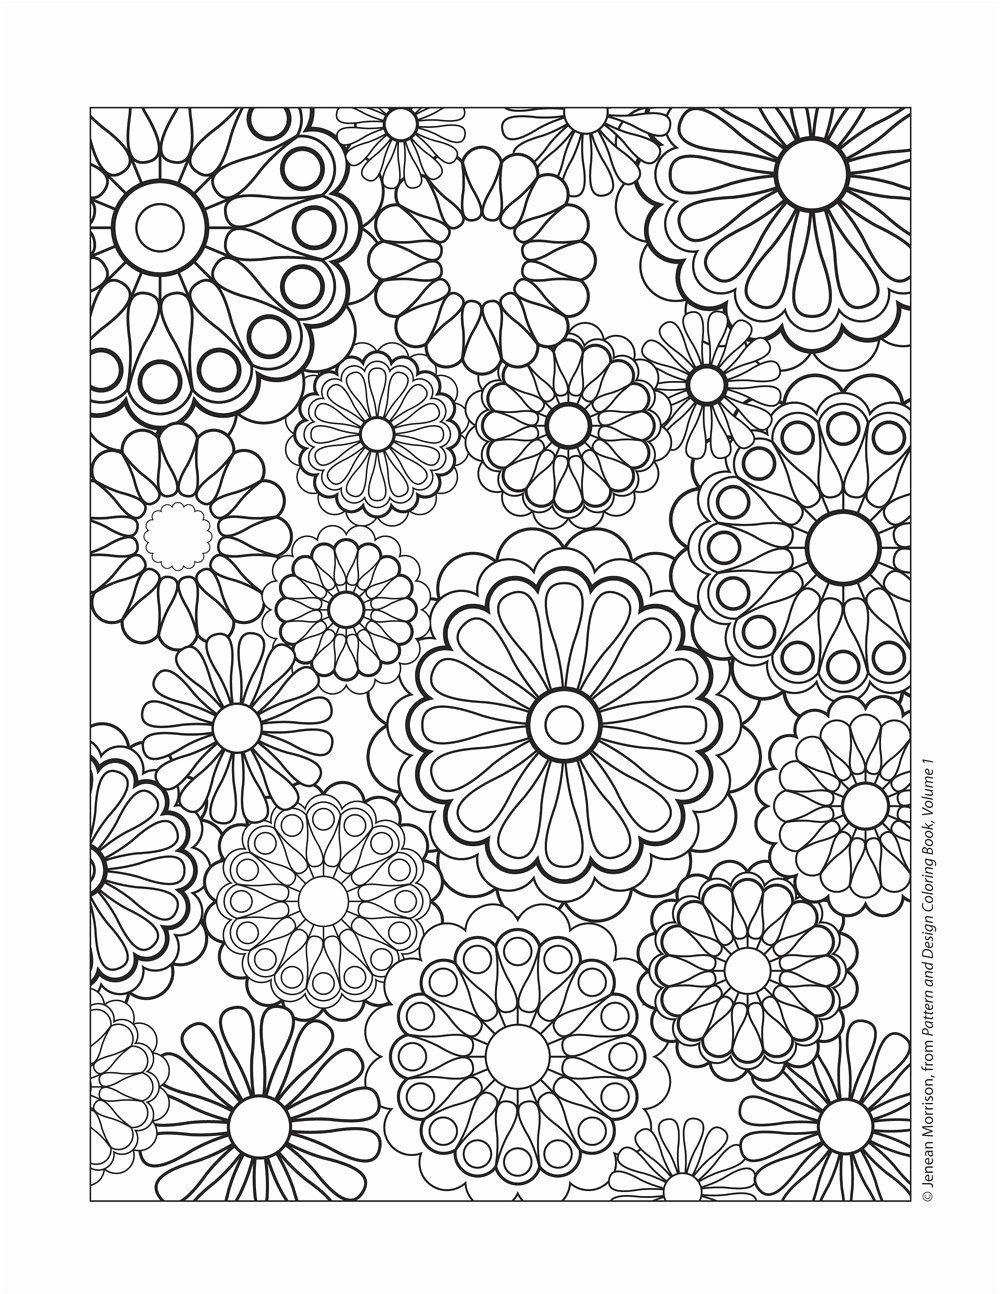 coloring pages game Collection-Coloring Pages Games Lovely Coloring Book 0d Modokom Cool Coloringcoloring Book Games For Adults 18-o